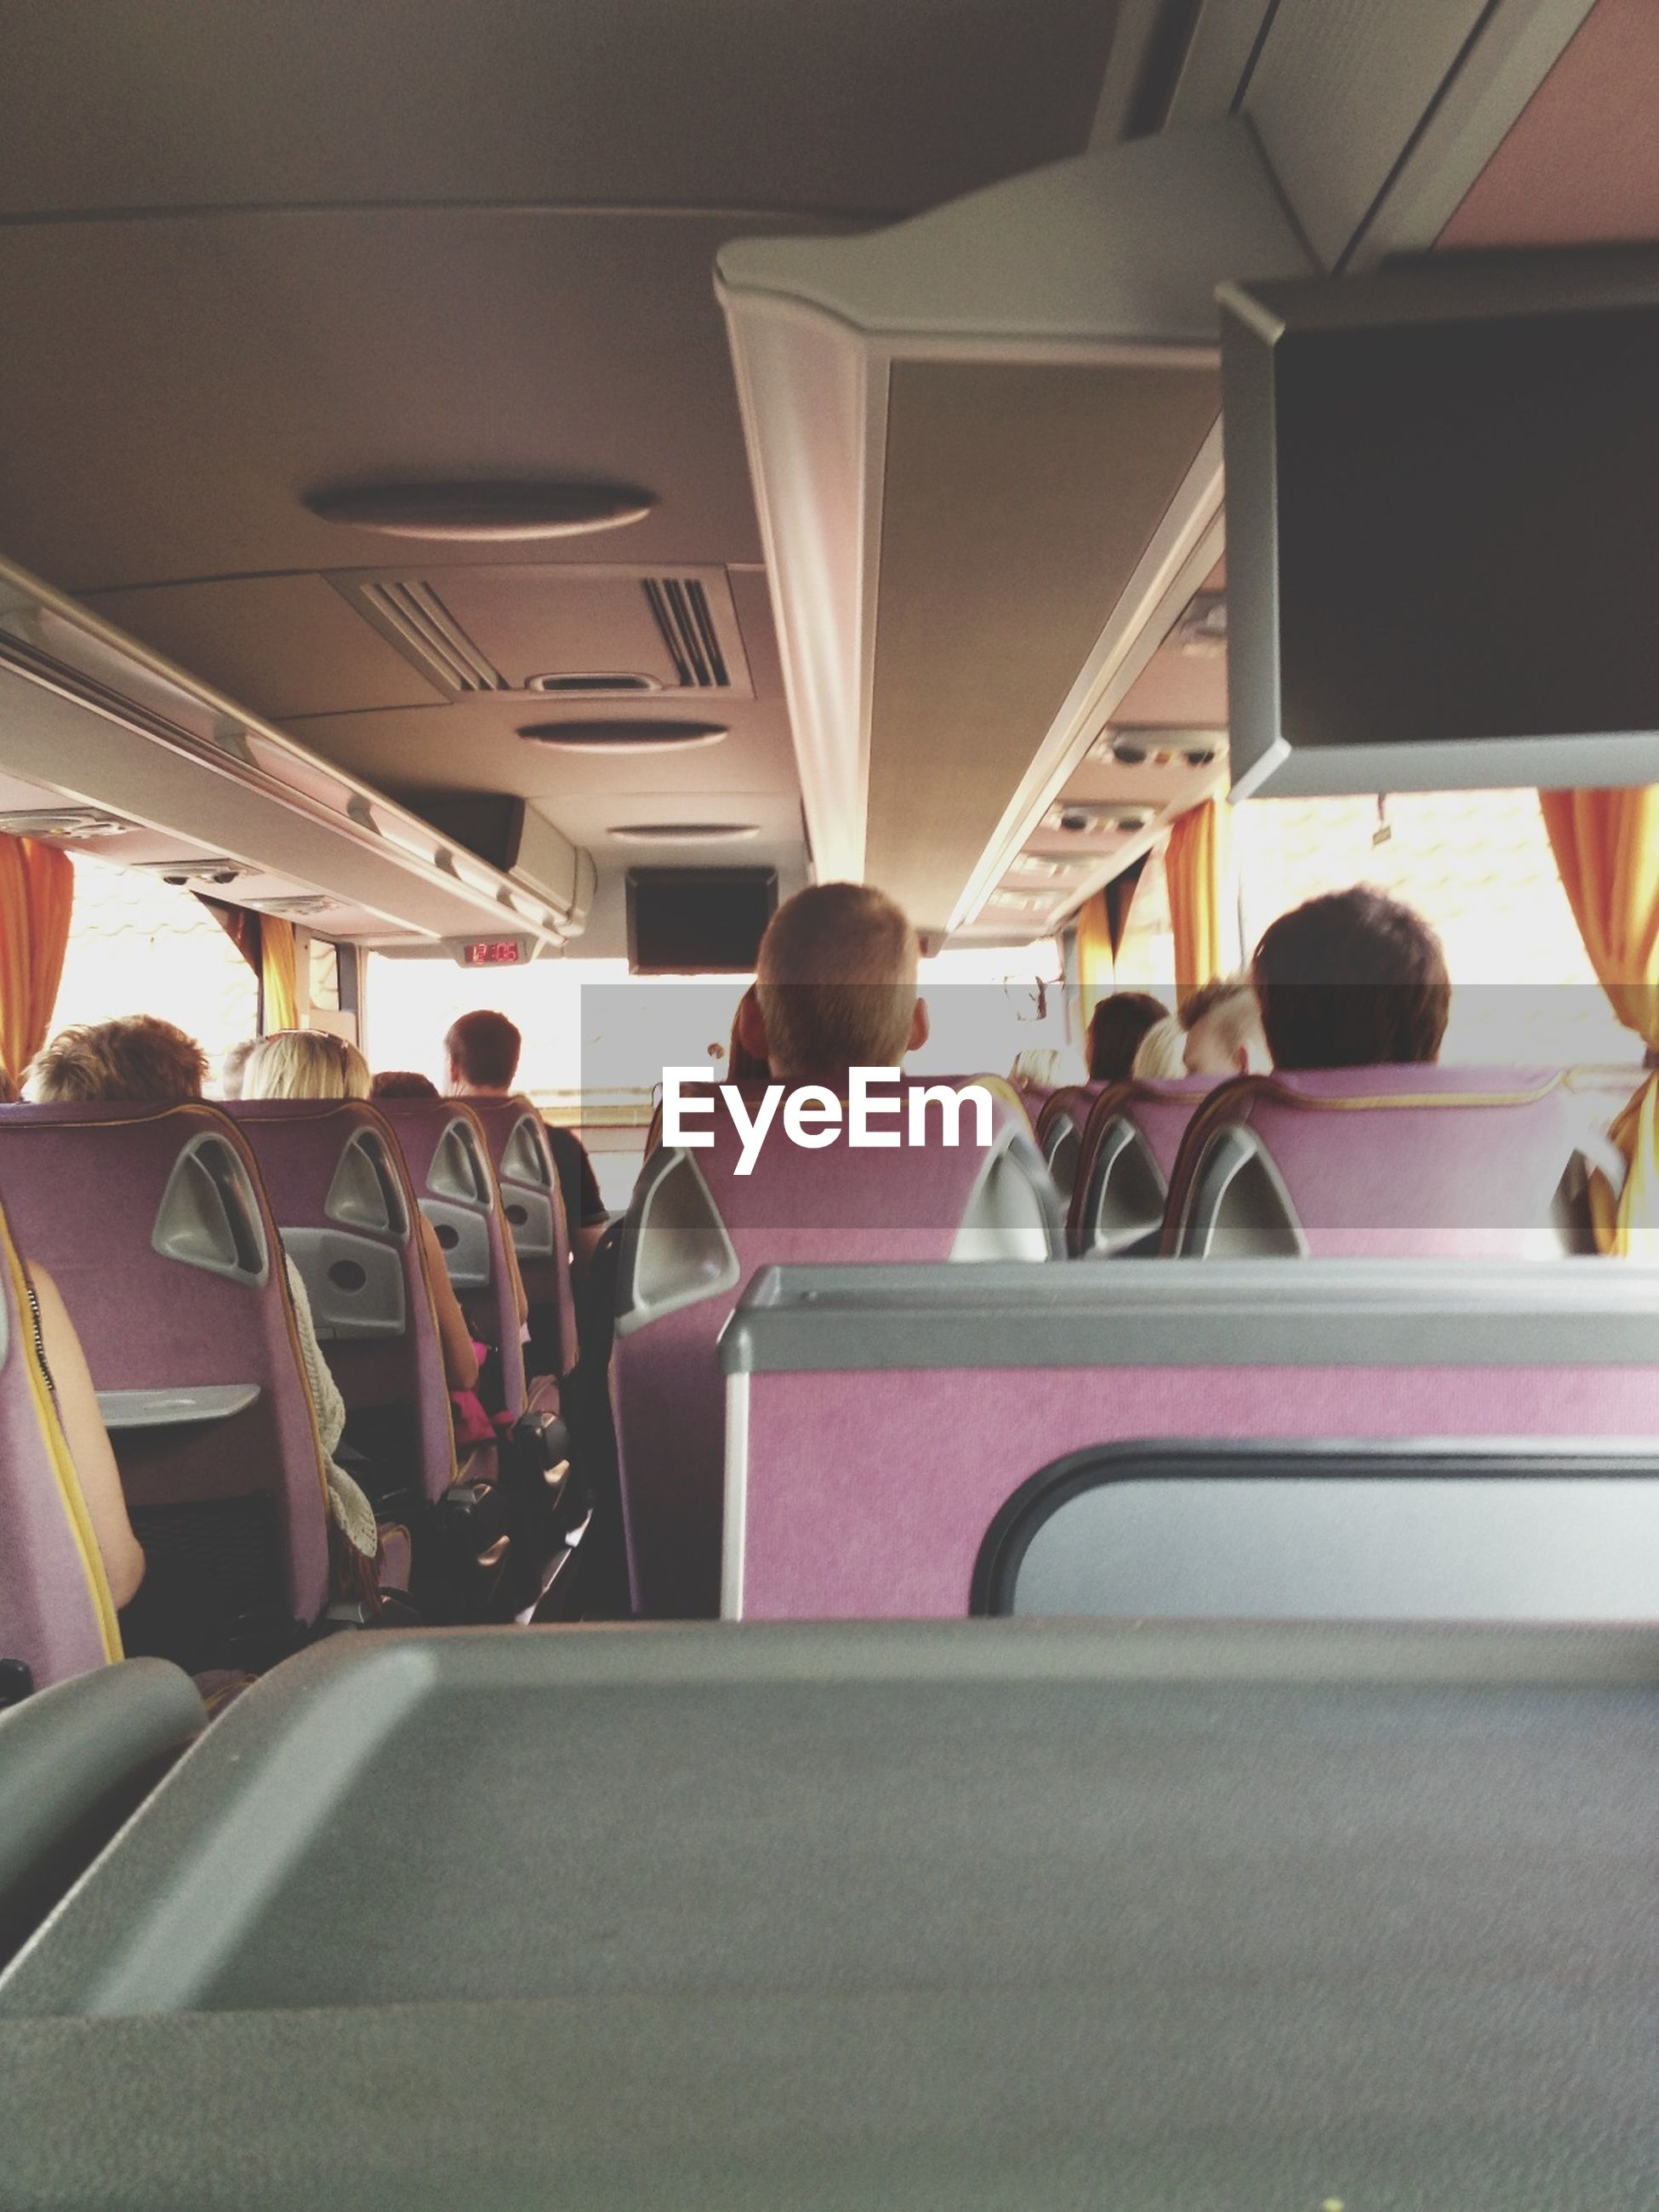 indoors, transportation, chair, architecture, built structure, seat, ceiling, vehicle seat, mode of transport, sitting, empty, in a row, absence, incidental people, men, window, vehicle interior, interior, lighting equipment